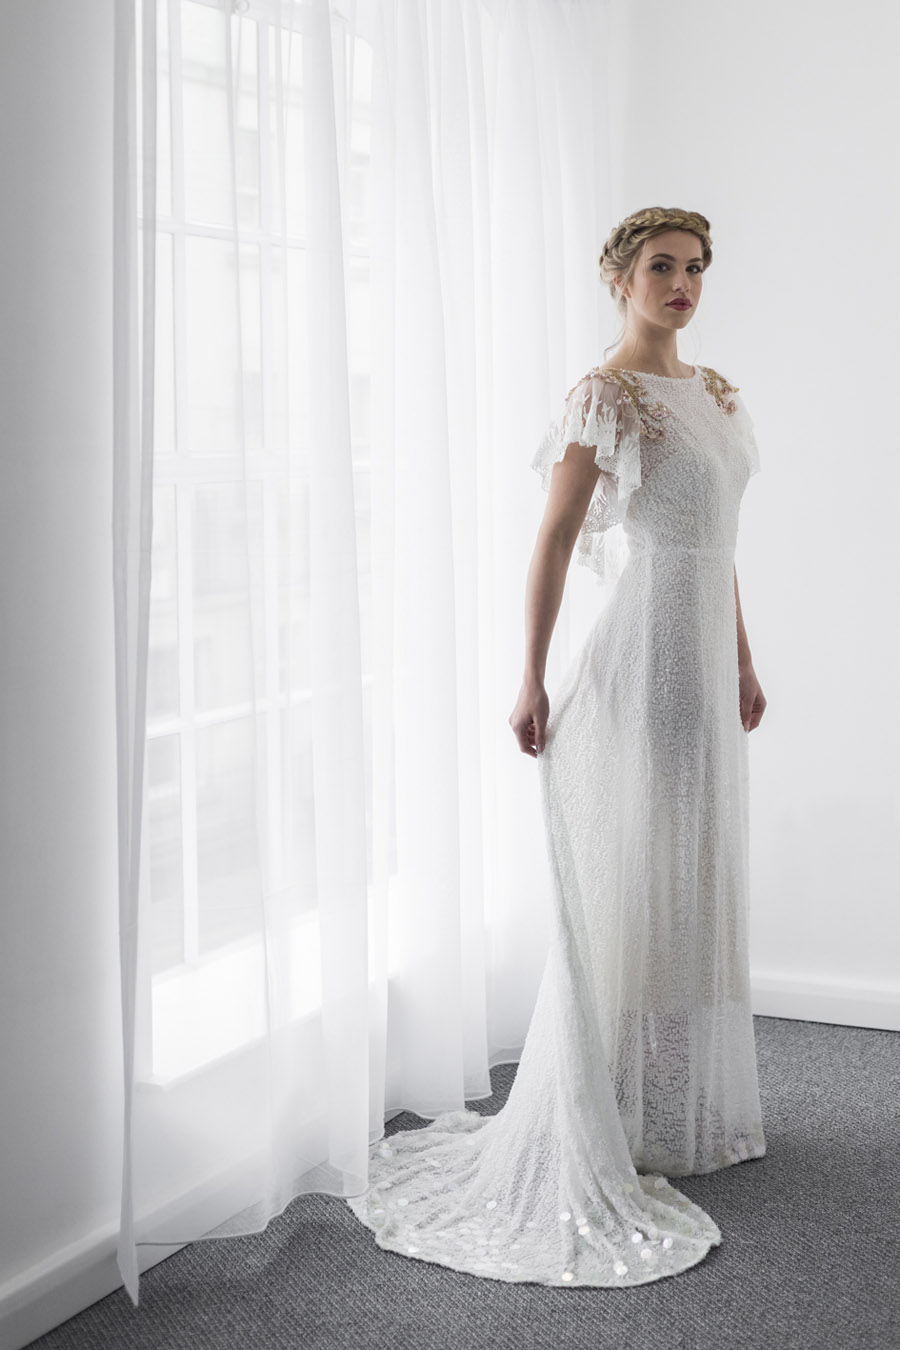 Sheradon Dublin Photography - dresses by Poppy Perspective on the English Wedding Blog (12)